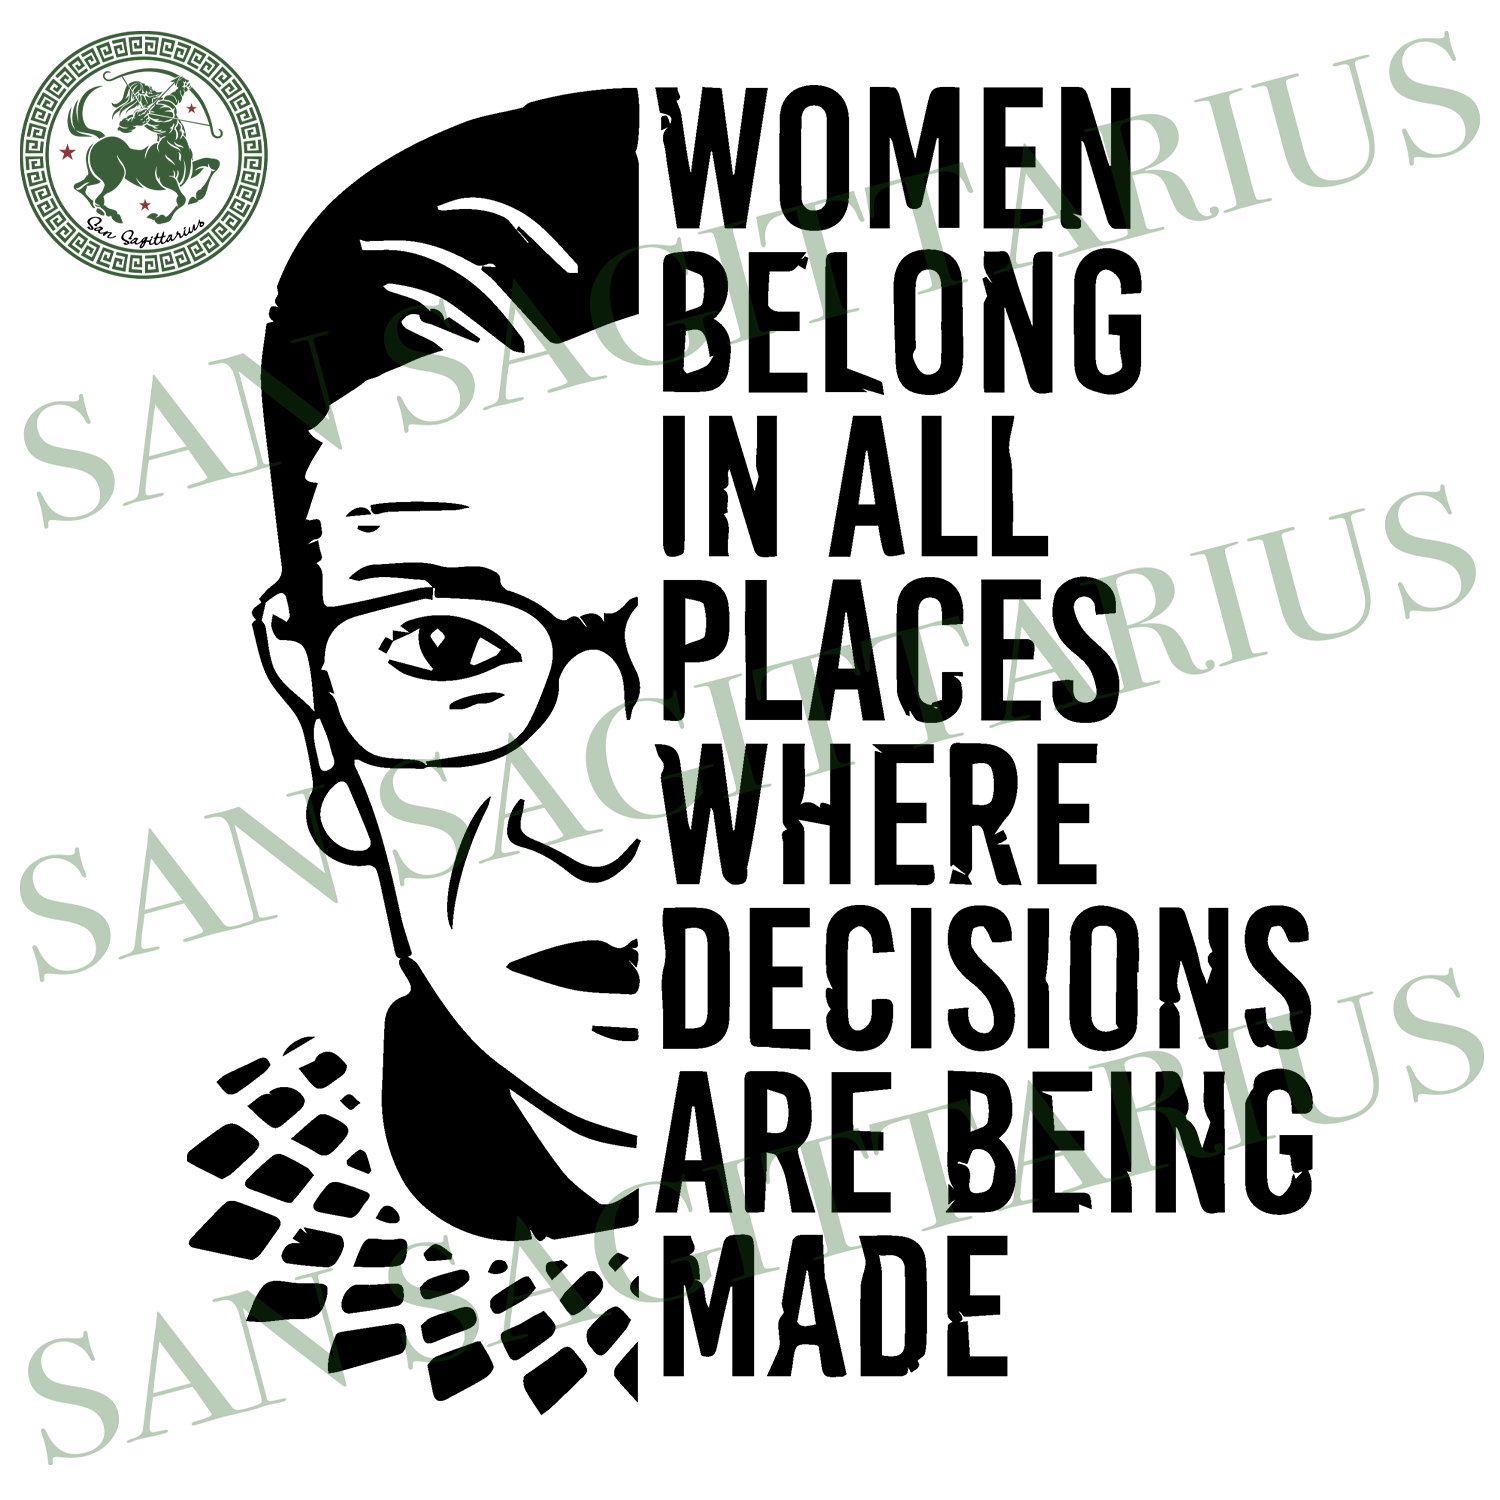 Women Belong In All Places Where Decisions Are Being Made, Trending, Ruth Bader Ginsburg, Judge, Ruth Bader Ginsburg Shirts, Low Price, Ruth Bader Ginsburg Gifts, Ferminist Shirts, Ruth Bader